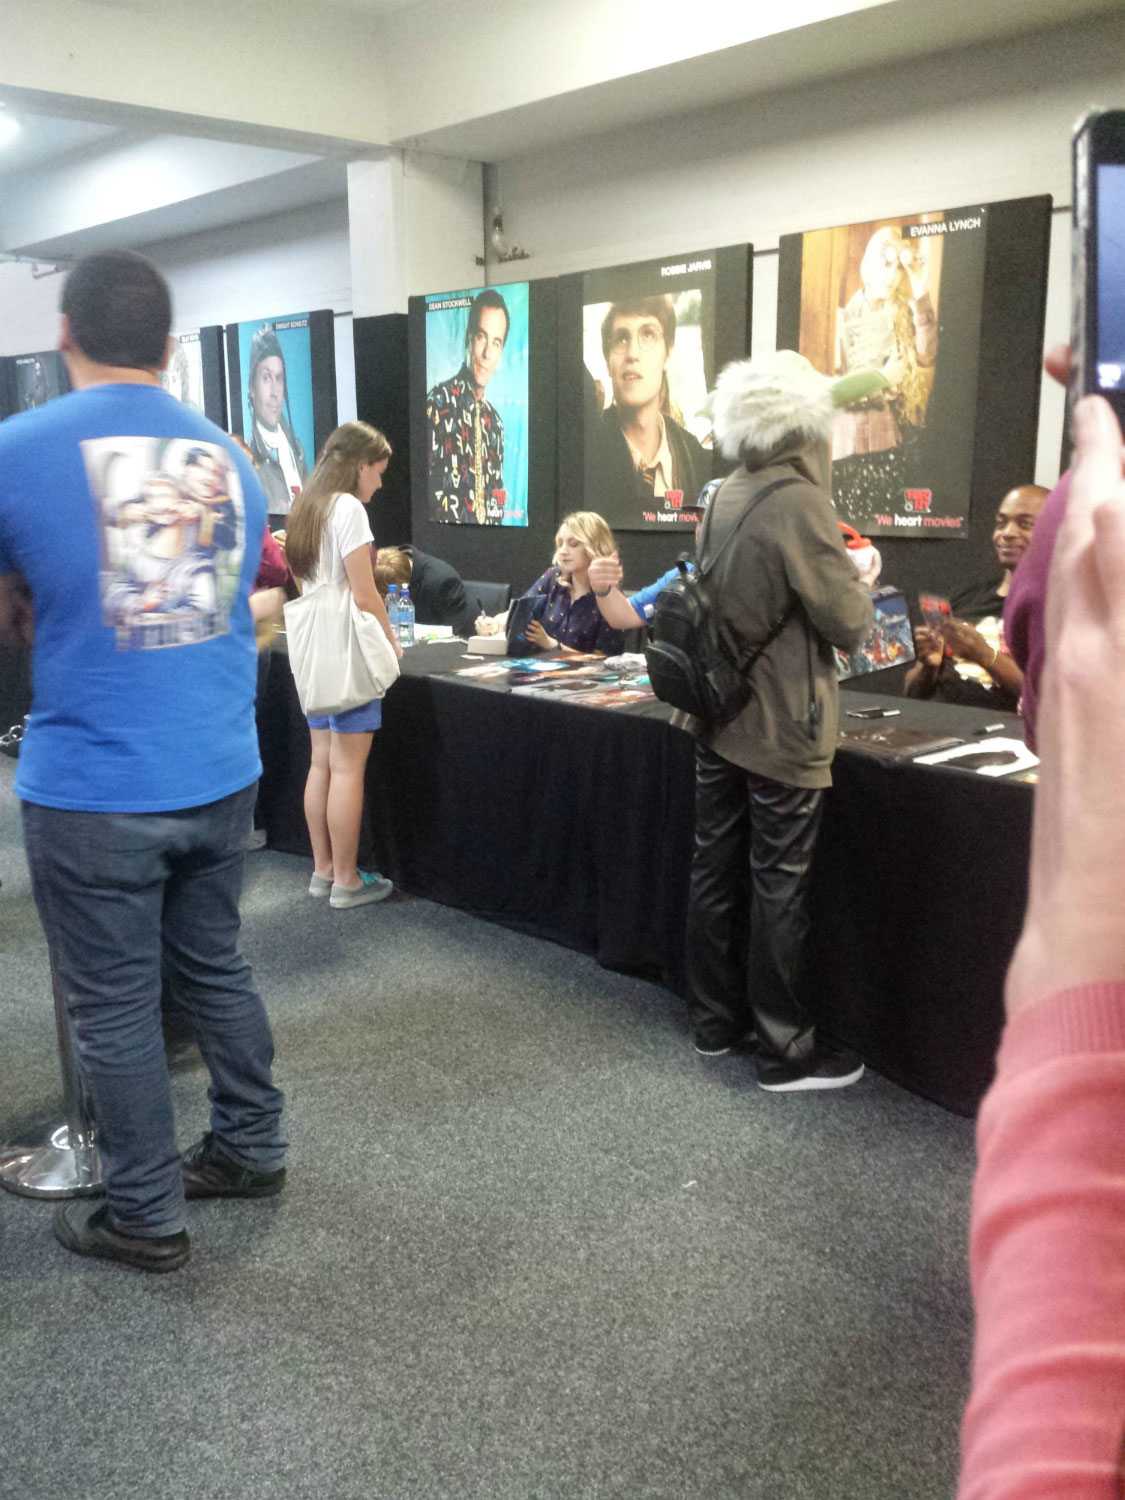 Armageddon Expo 2013 Auckland – Oct 28 – Autographs – 6 (Photo credit: Tracey Wong)